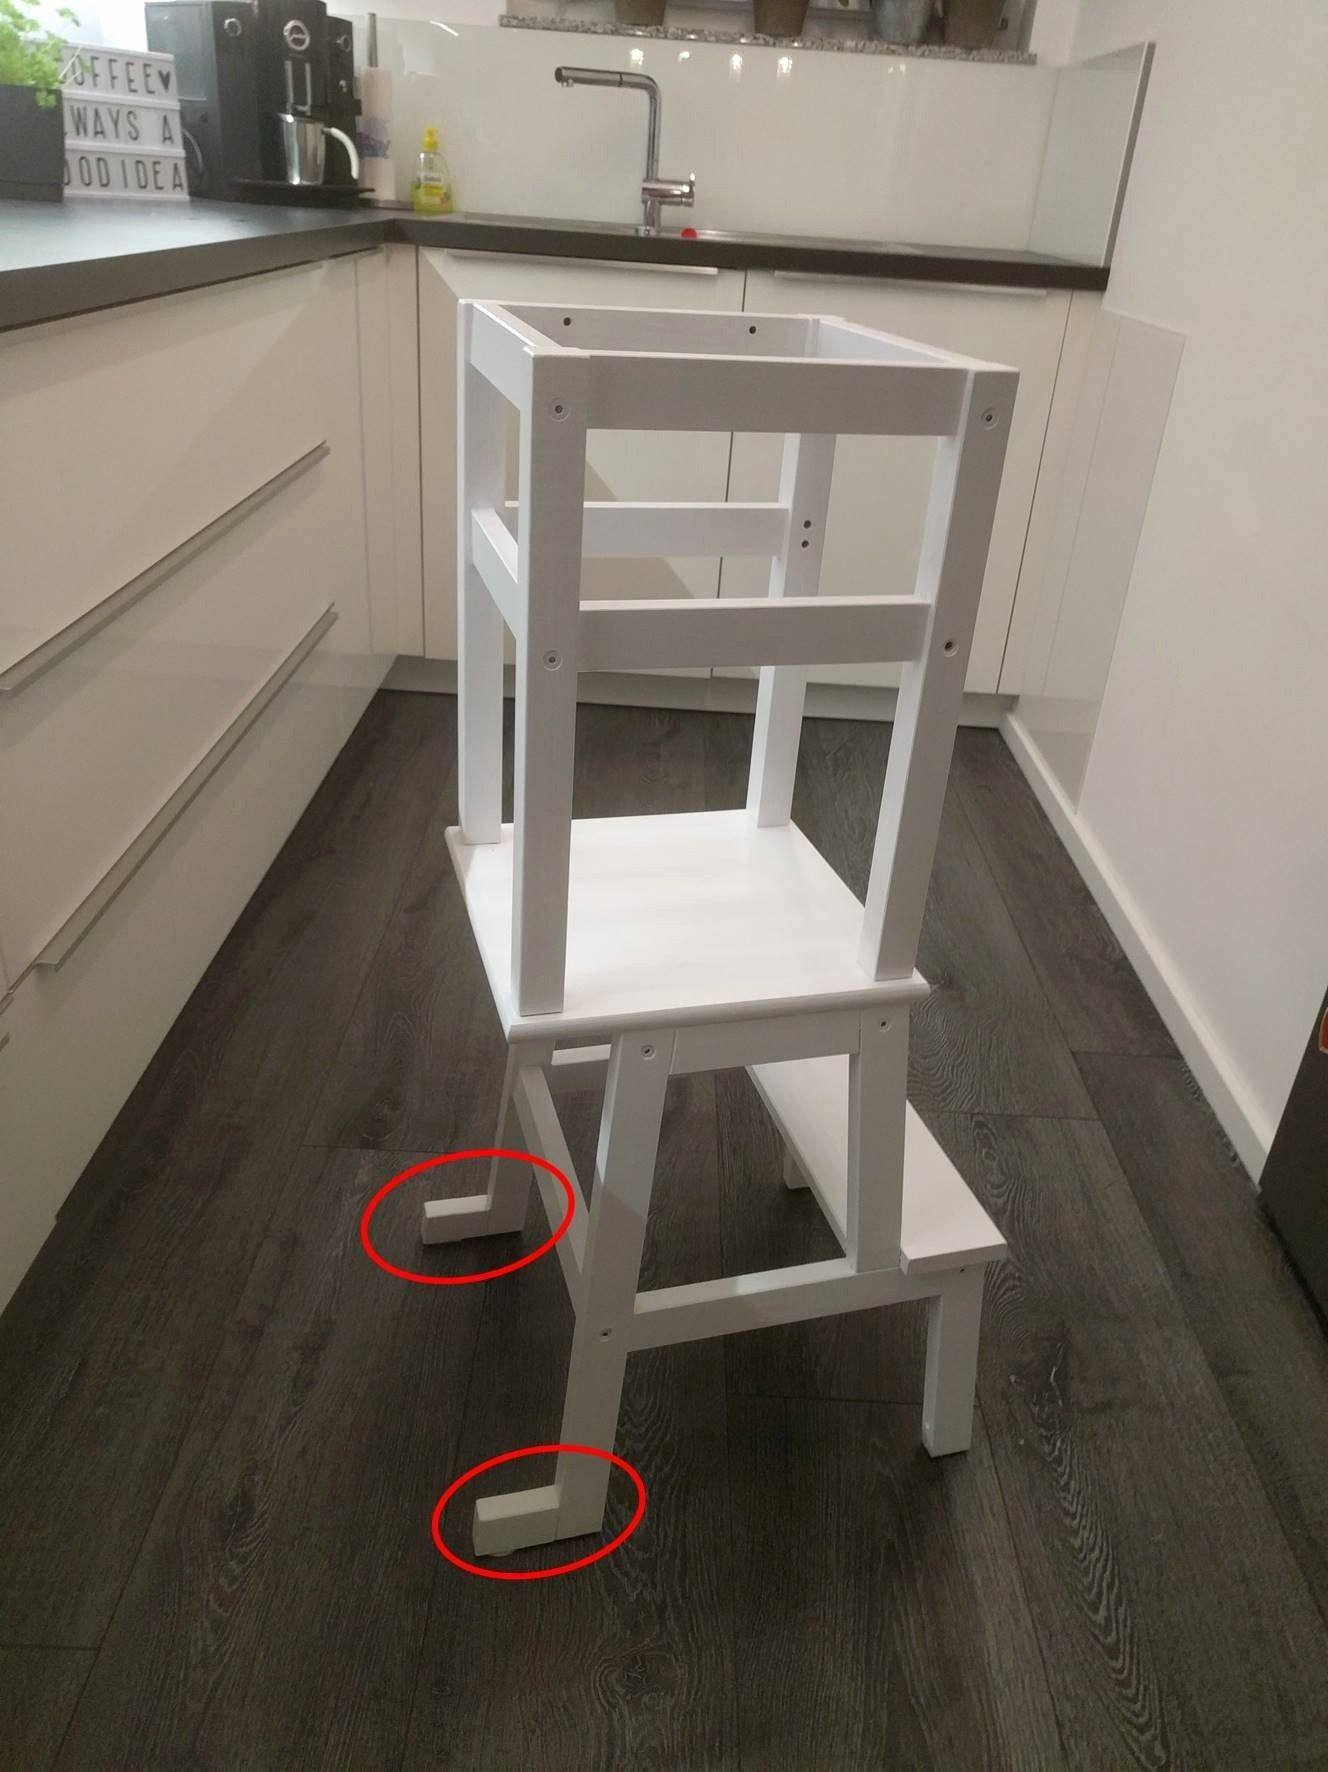 Mobilier De Jardin Ikea Charmant Pin by Ketty Corp On Idées De Meubles In 2019 Of 28 Best Of Mobilier De Jardin Ikea